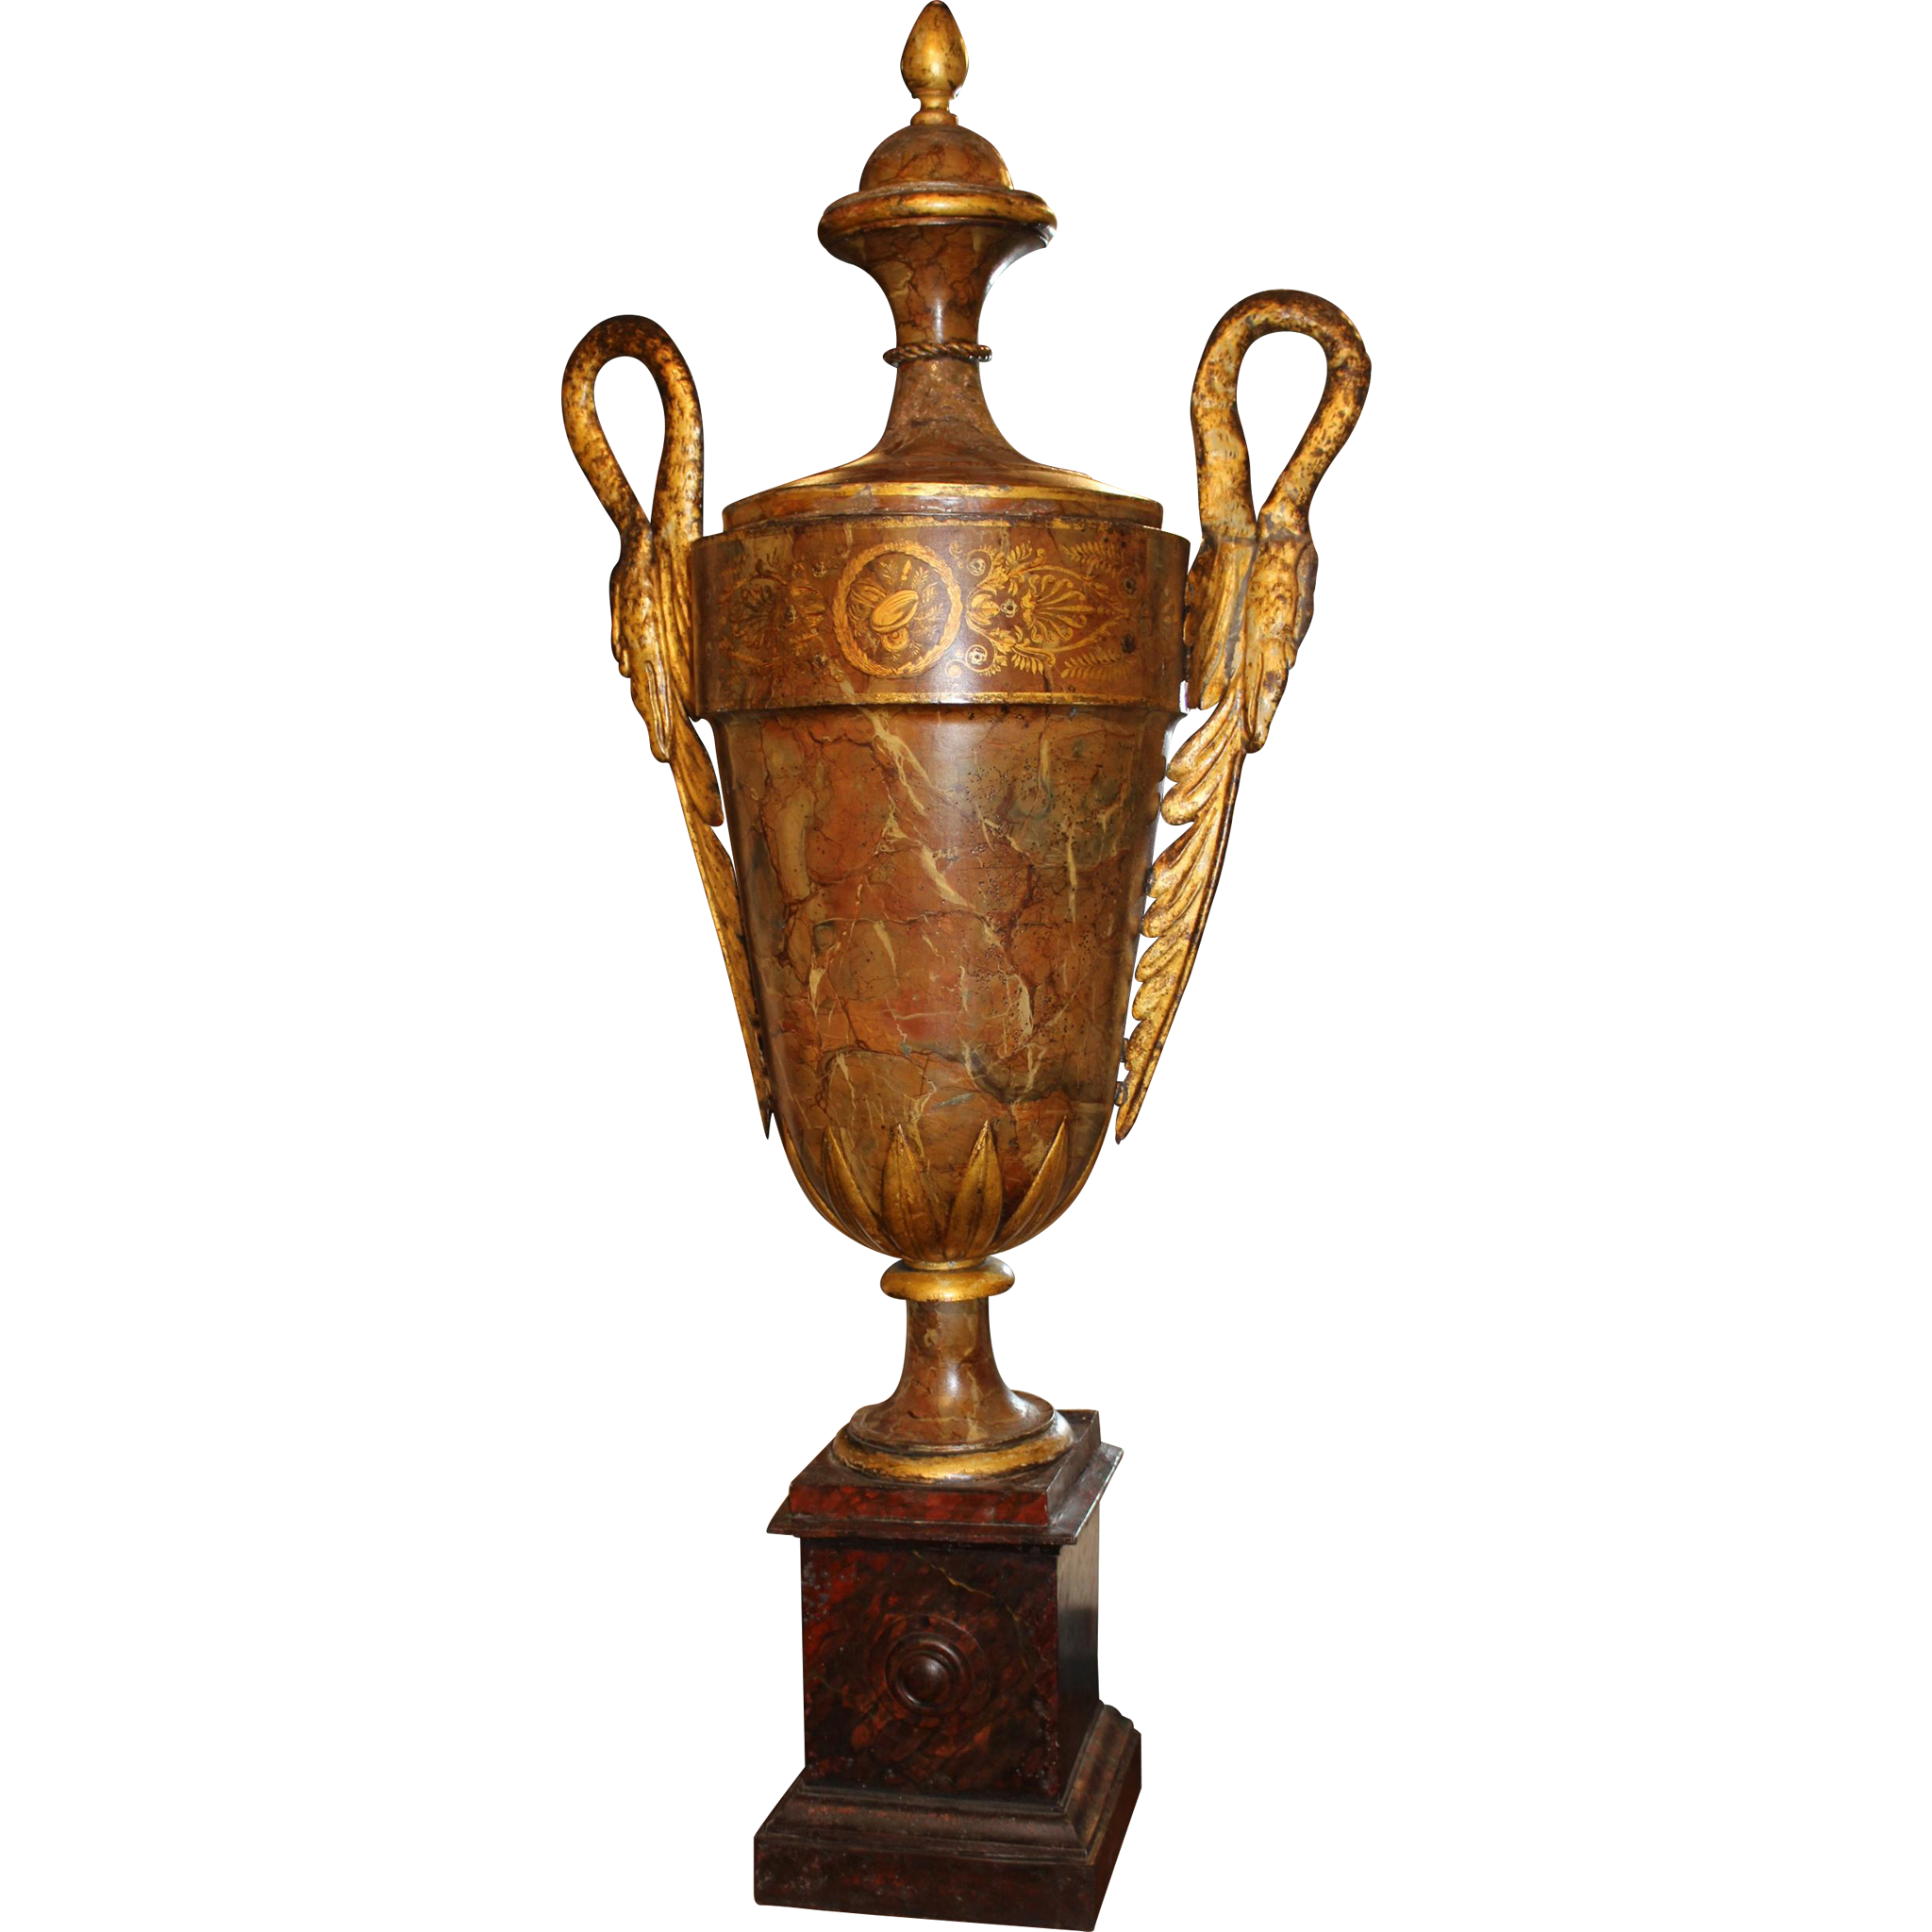 Early 19th Century European Tole Polychromed Urn or Finial